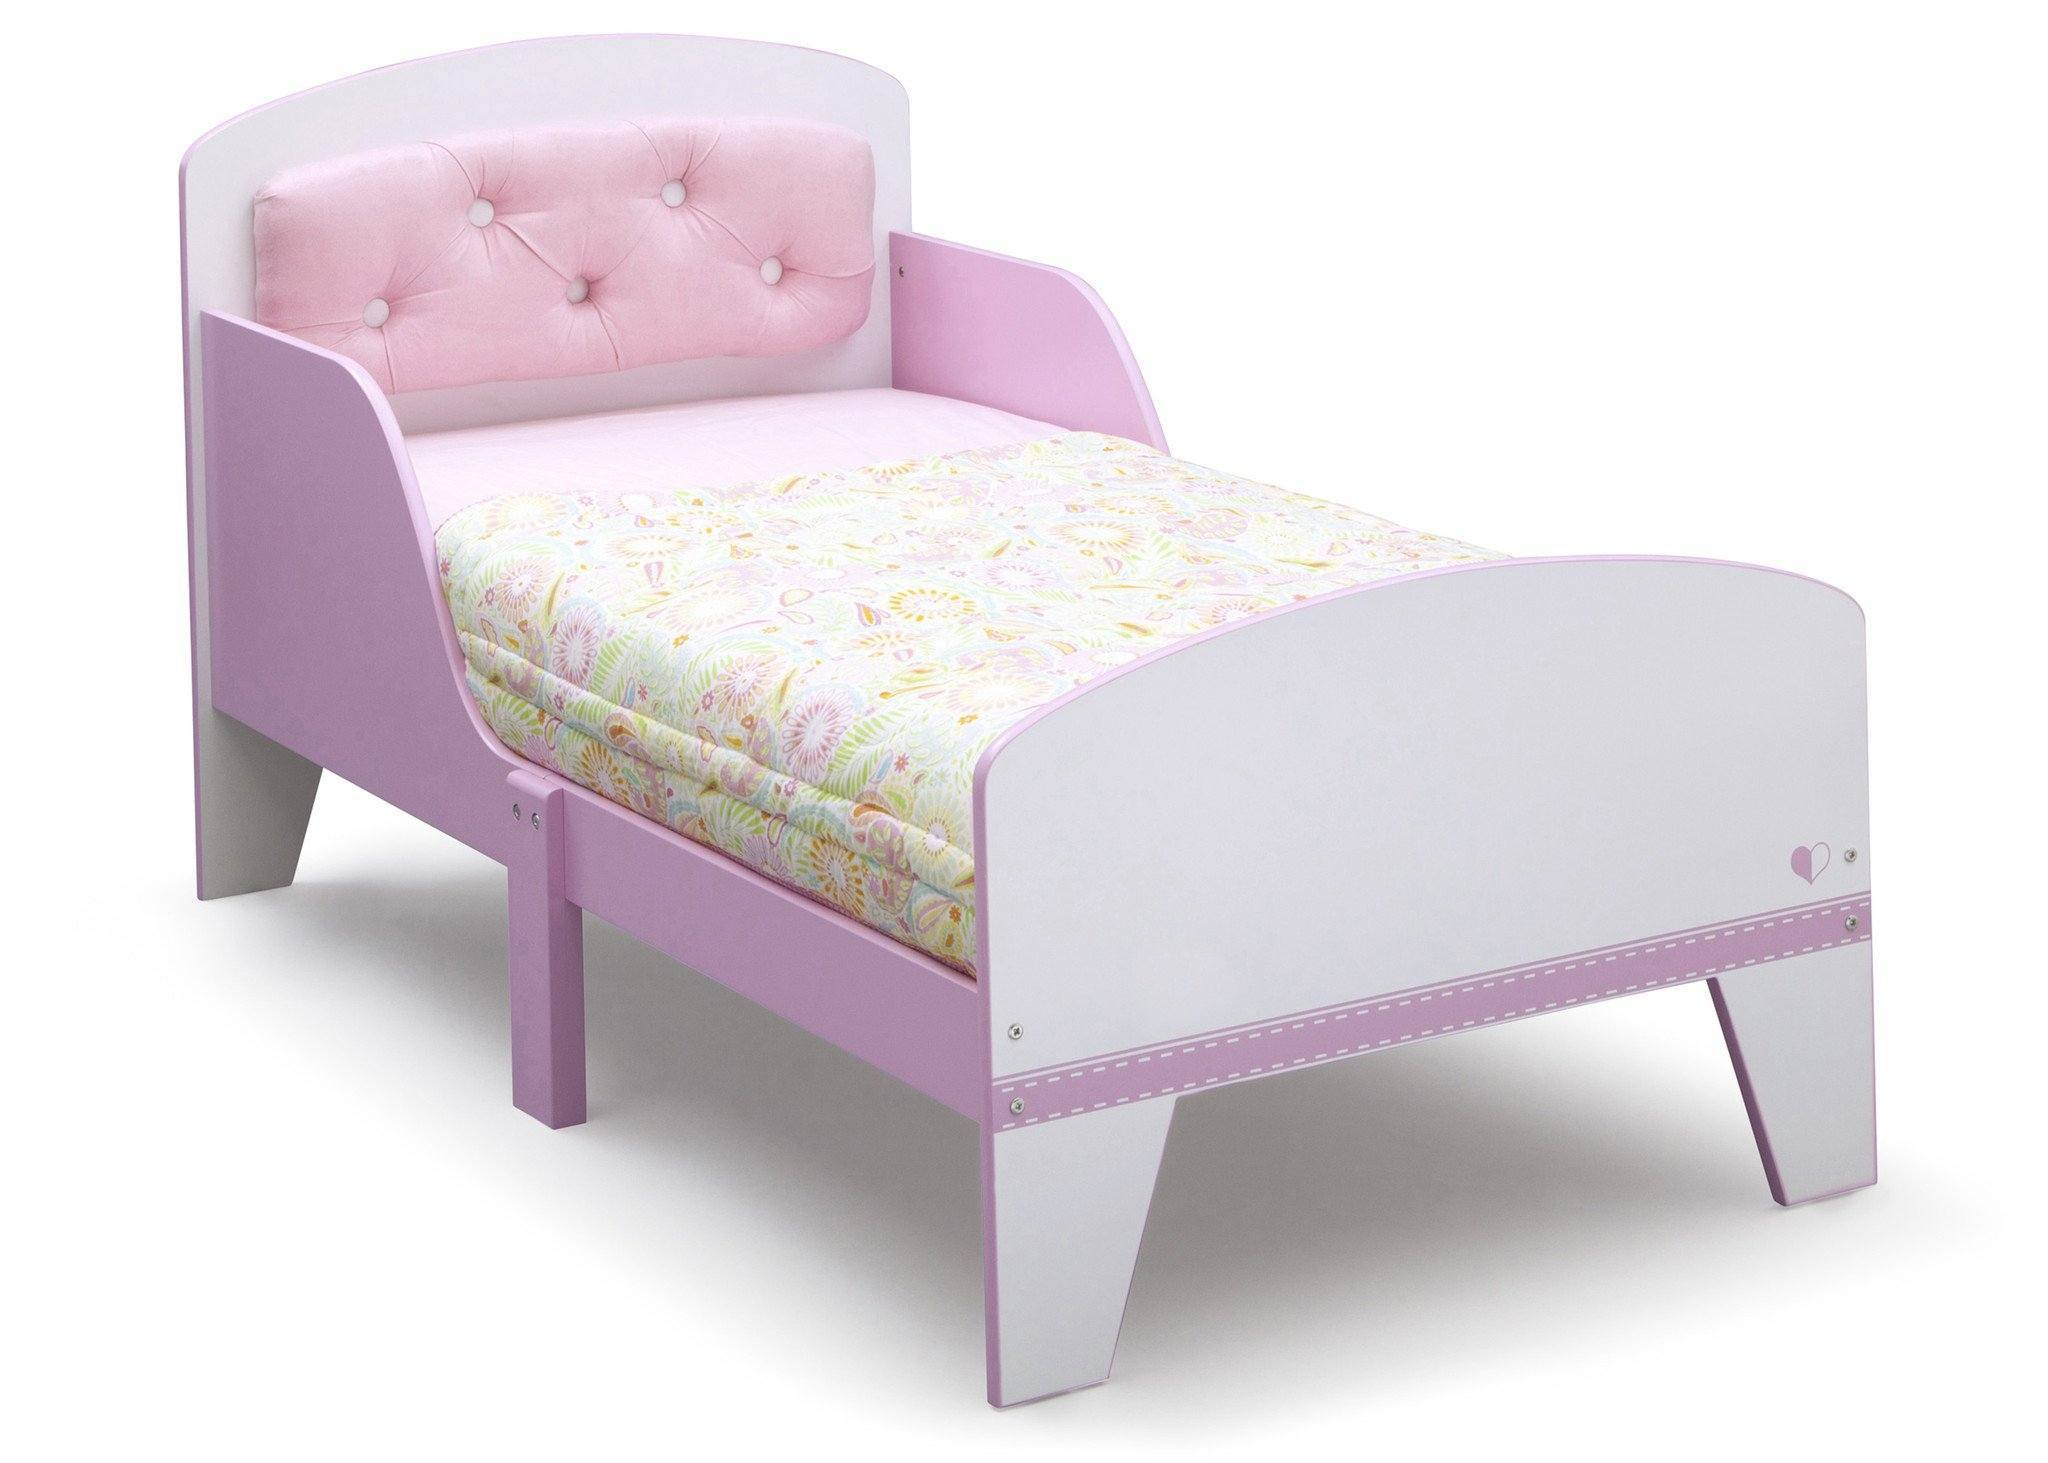 bed nantuckettoddlerbed master cheap nantucket beds hayneedle cfm product kidkraft toddler